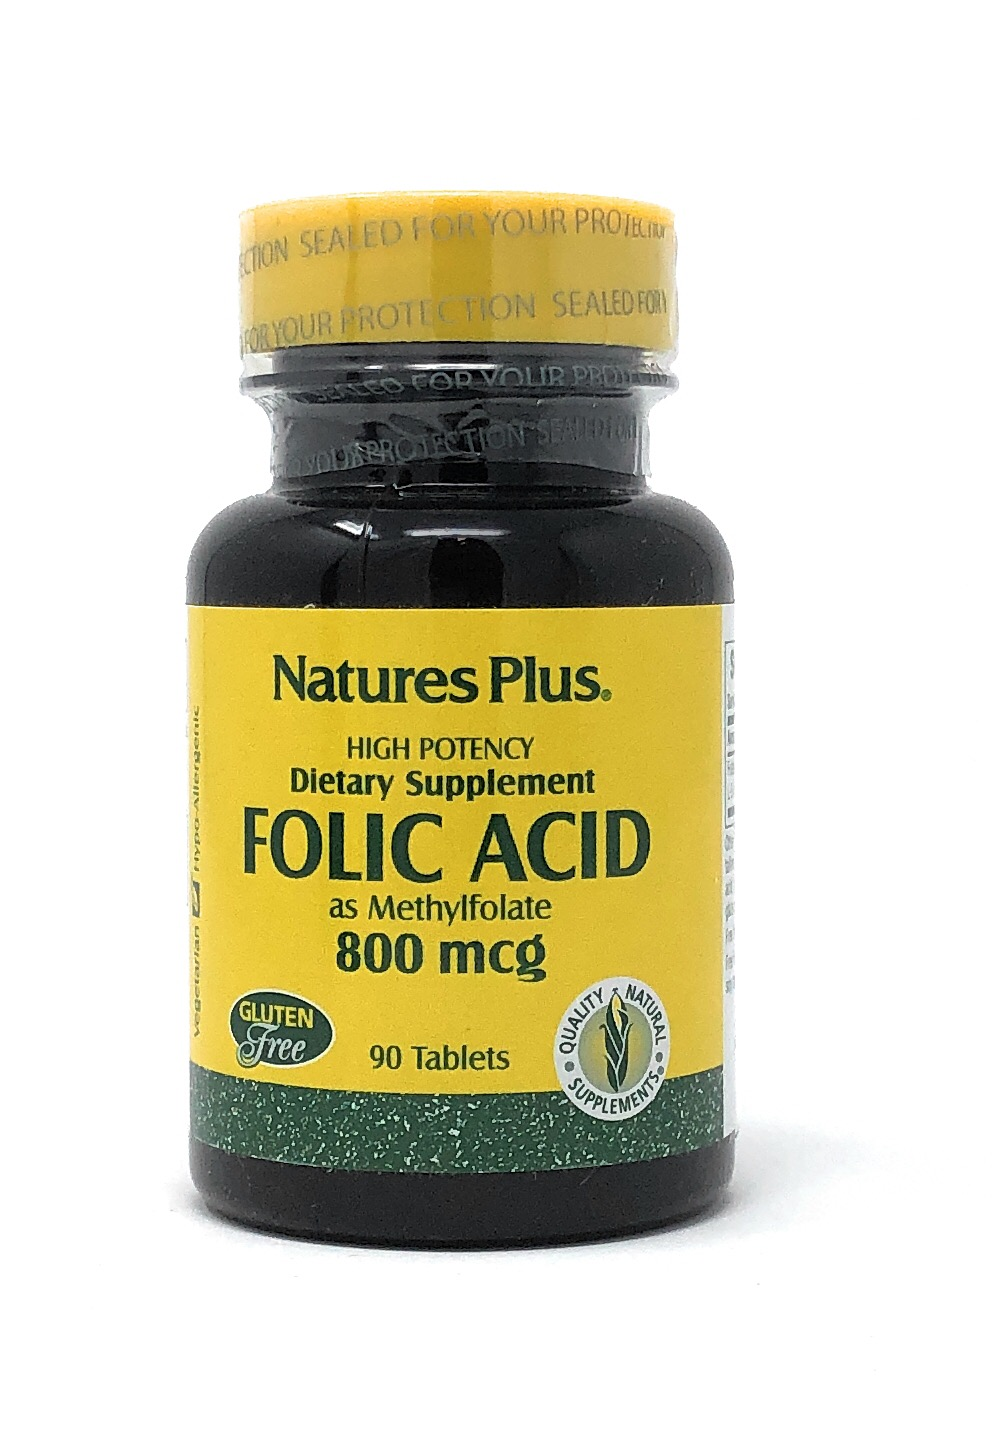 Natures Plus Folic Acid as Methylfolate 800mcg (Folsäure) 90 Tabletten (vegan) (59,3g)